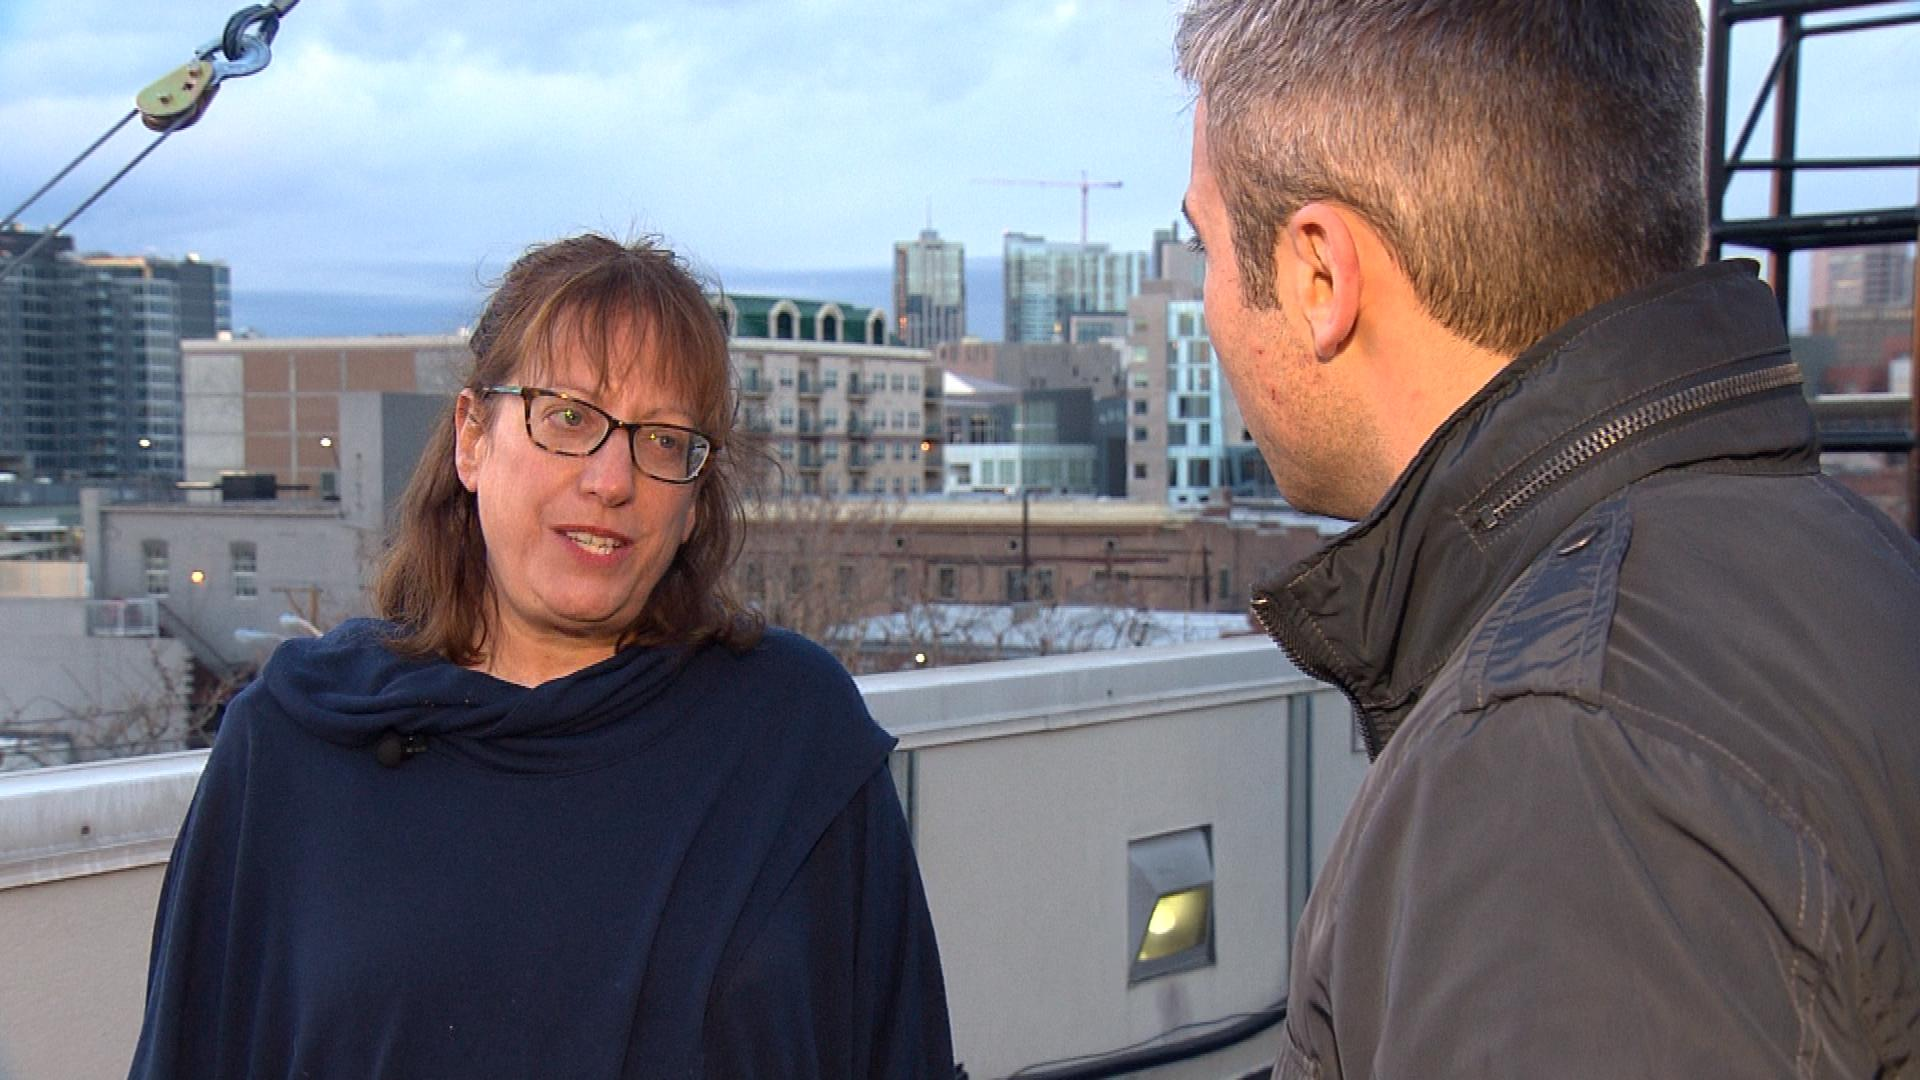 Eve Rose, an organizer with Indivisible Front Range Resistance, is interviewed by CBS4's Stan Bush (credit: CBS)